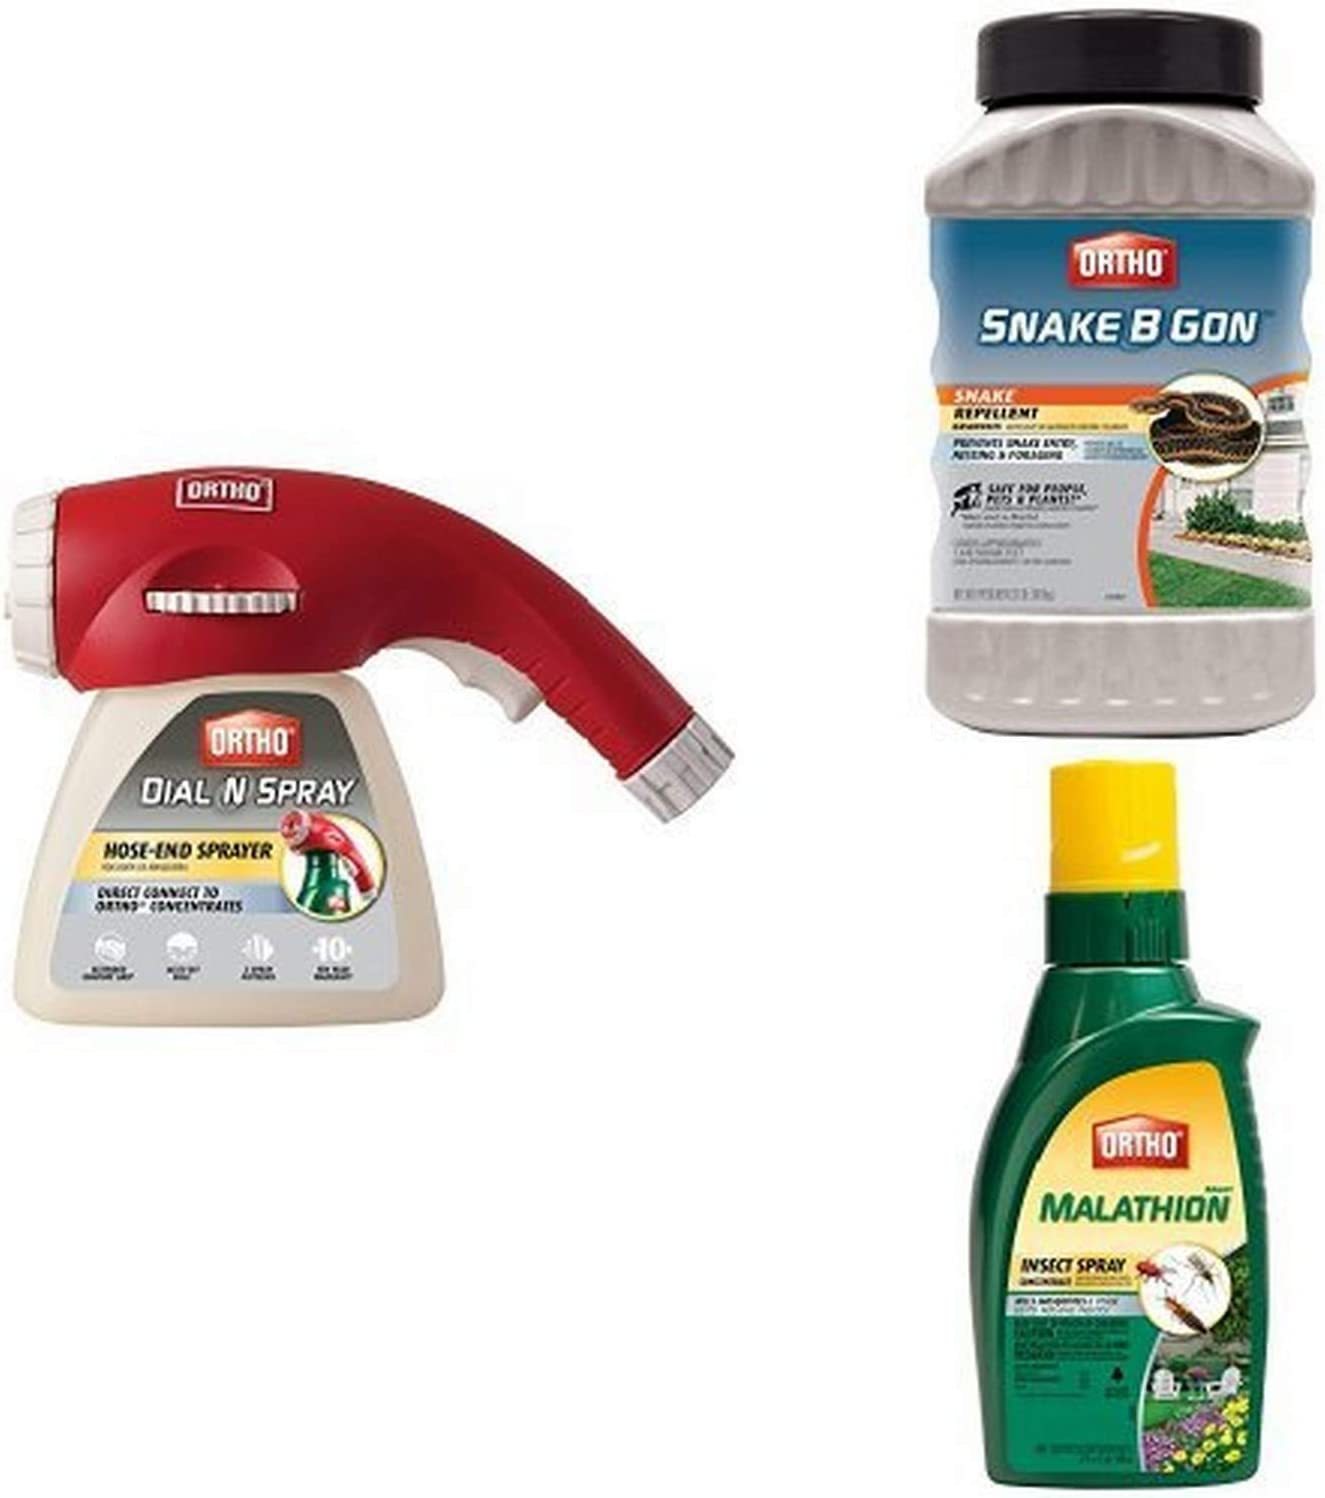 Ortho Mosquito Control & Snake Repellent Bundle